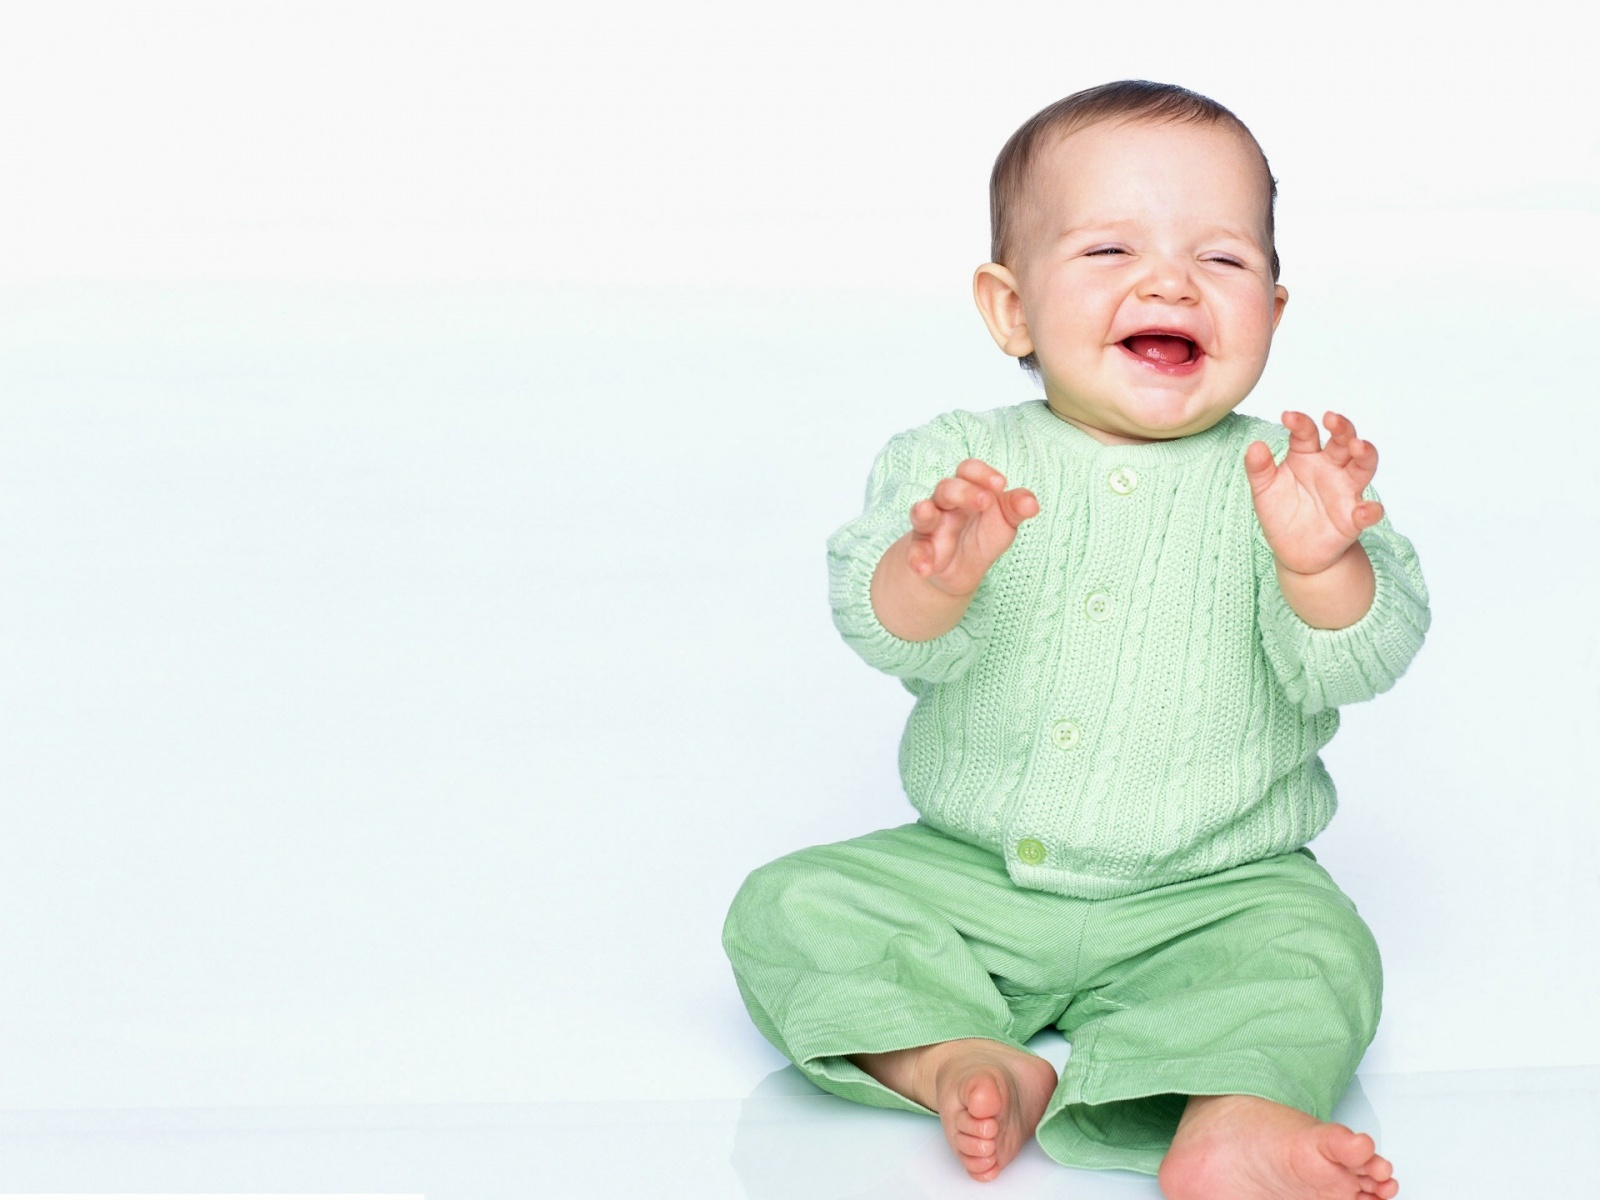 baby pictures: cute baby laughing